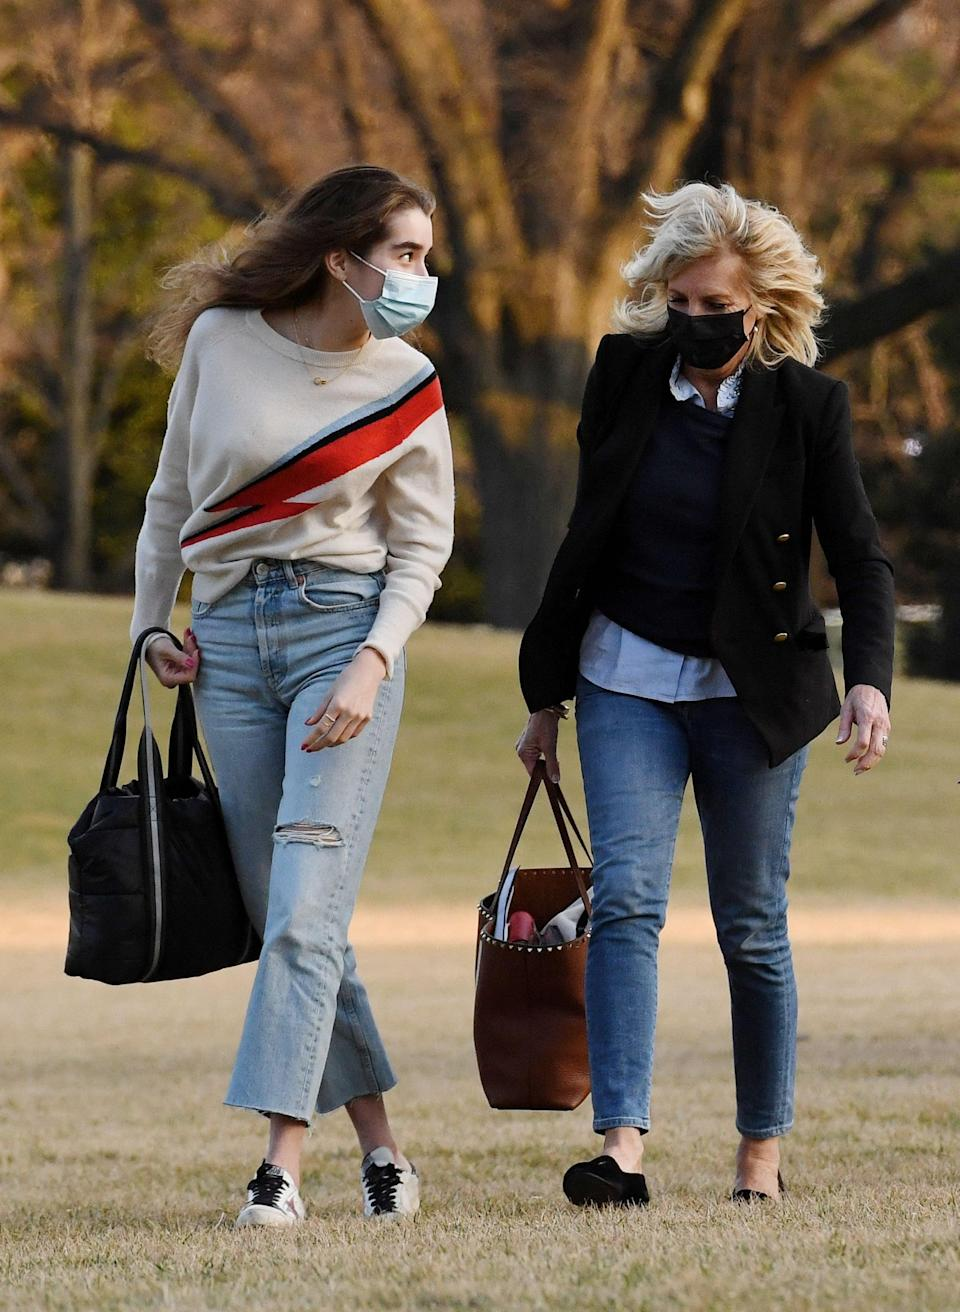 """<p>For casual travel days, Dr. Biden has been spotted in her skull Stubbs and Wootton slippers, which <a href=""""https://stubbsandwootton.com/products/skull-women-slipper?_pos=3&amp;_sid=deef3ecb4&amp;_ss=r&amp;variant=35913918924"""" class=""""link rapid-noclick-resp"""" rel=""""nofollow noopener"""" target=""""_blank"""" data-ylk=""""slk:retail for $500"""">retail for $500</a> and are hand-crafted in Spain. The skull embroidery is proof Biden is more than willing to add a touch of personality to her looks - and that she's realistic about navigating the lawn in sensible flat loafers, rather than heels. Stubbs and Wootton, founded in the early '90s in Palm Beach, Florida, prides itself on making luxury, bespoke slippers relevant.</p>"""